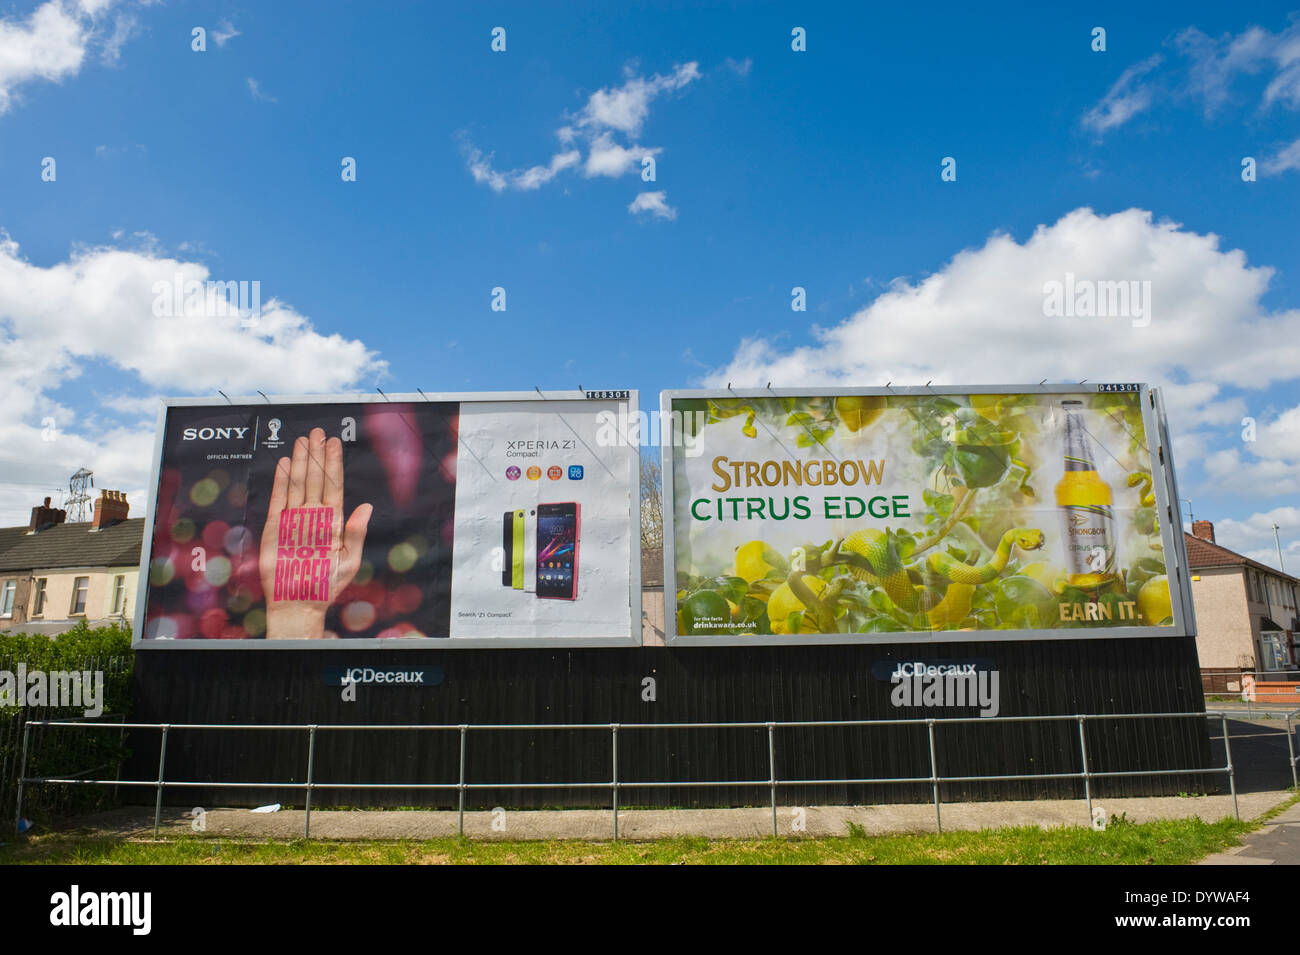 Sony Xperia Z1 smart phone & Bulmer's Strongbow Citrus Edge Cider advertising billboards on JCDecaux roadside site in Newport South Wales UK - Stock Image